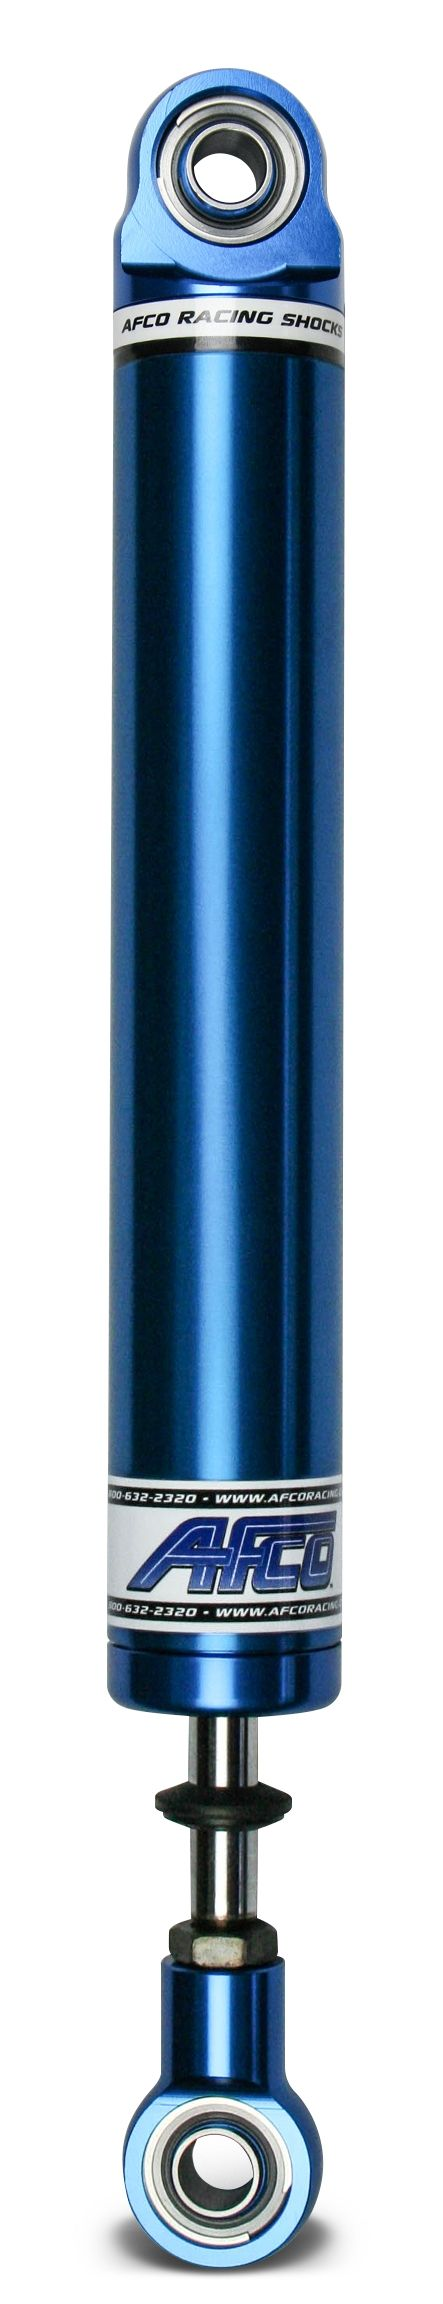 AFCO 1694-6S Aluminum Shock Twin Tube 16 Series 9